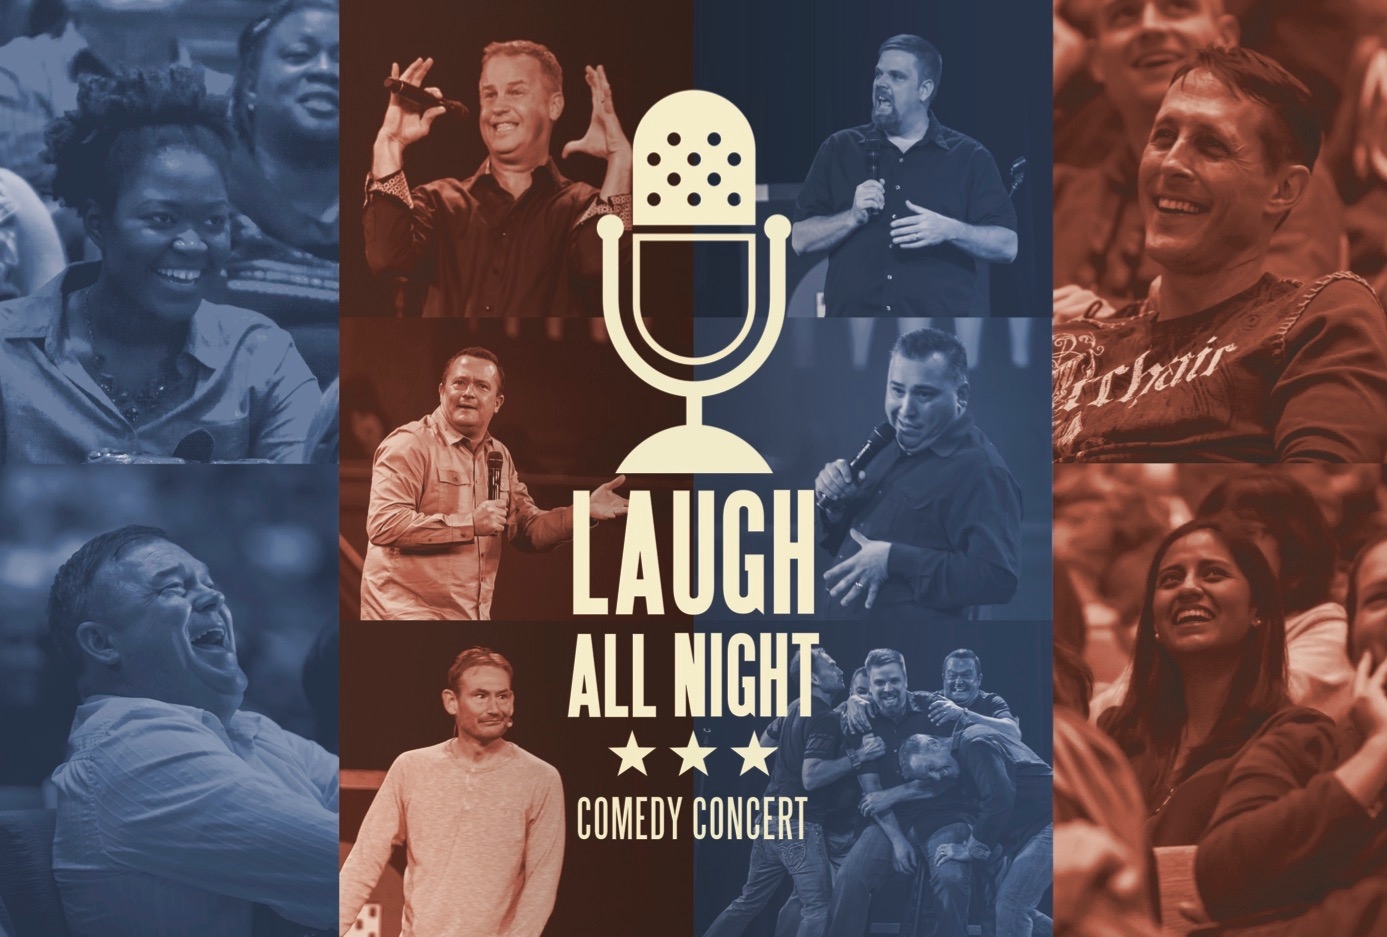 Laugh All Night Comedy Concert